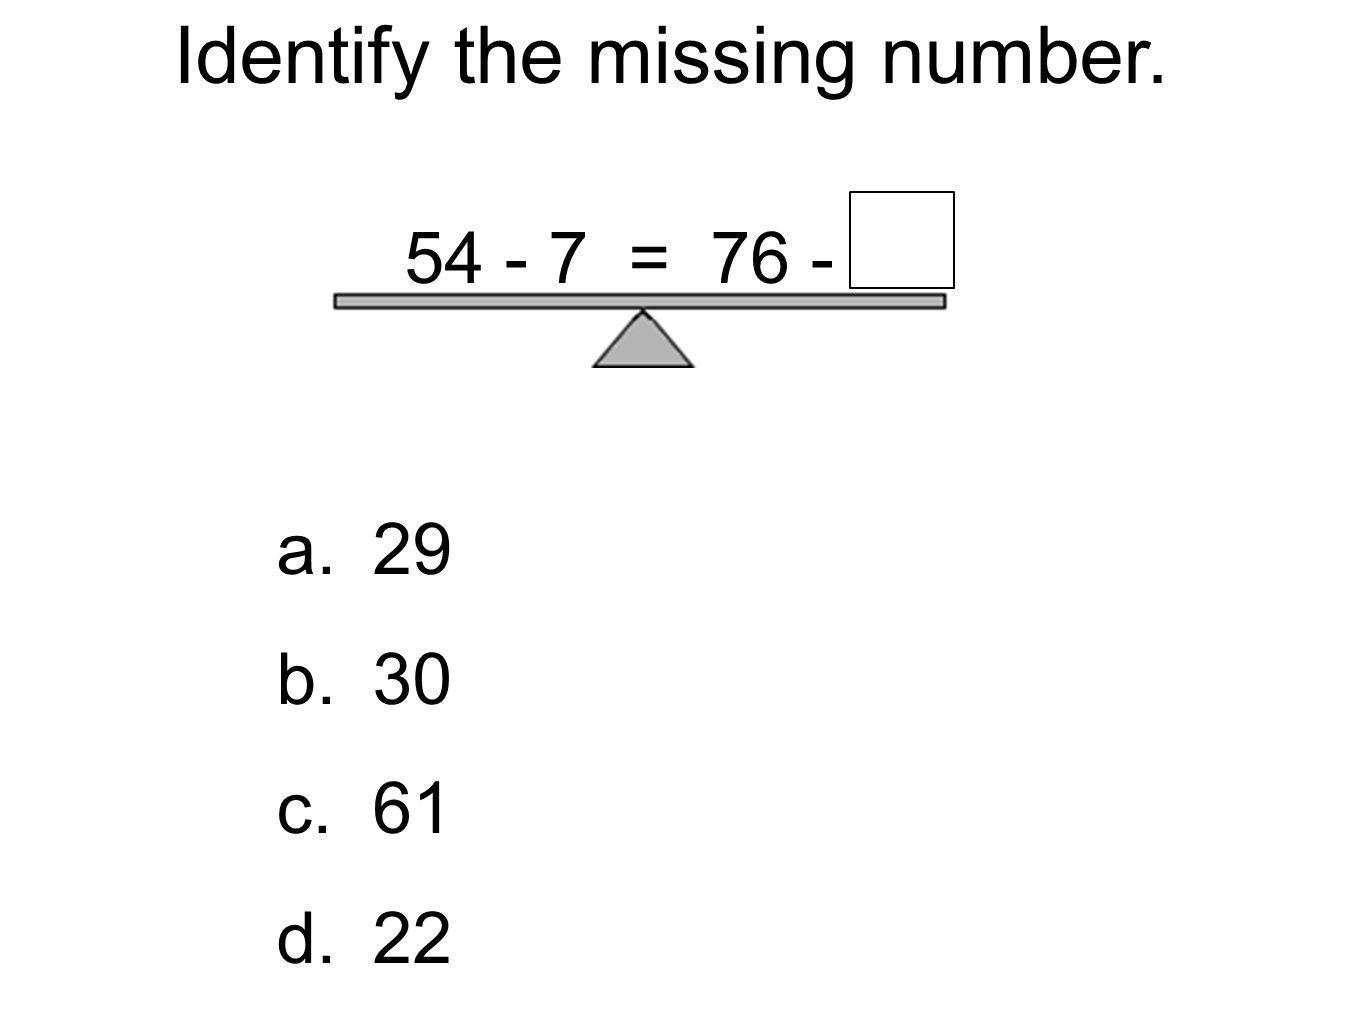 Identify the missing number.